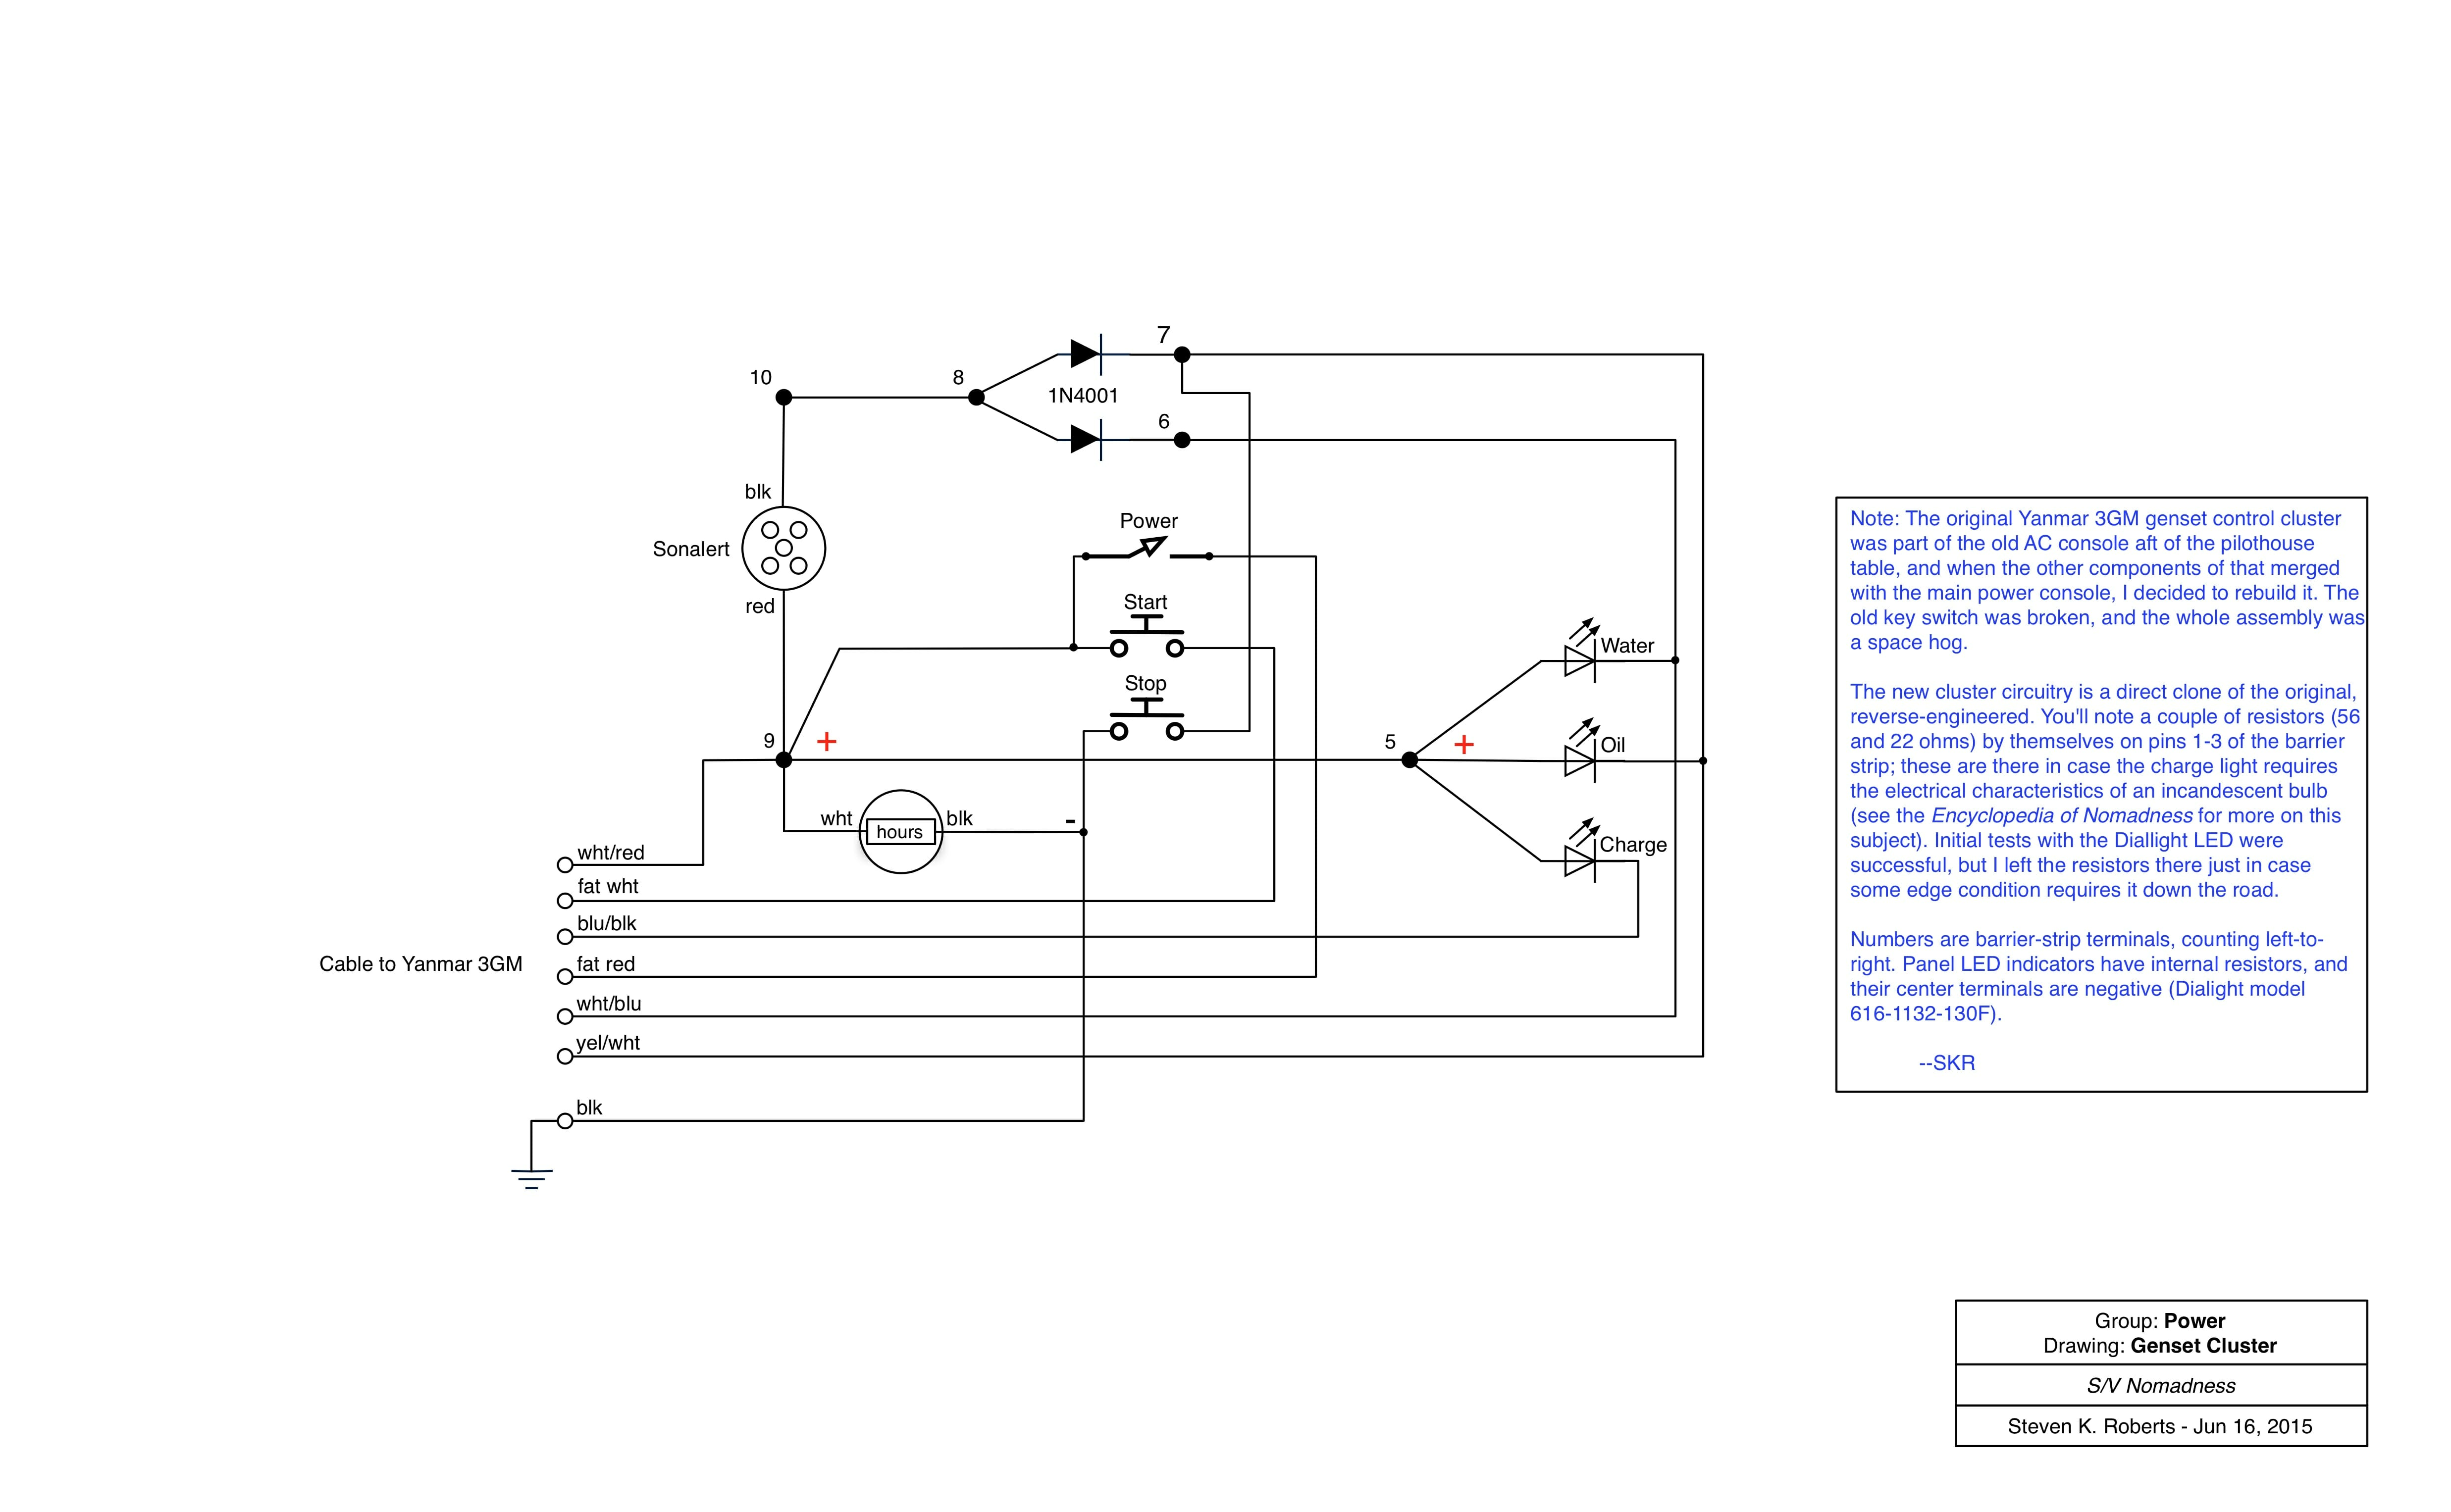 nom schematic genset cluster sailboat power console fabrication nomadic research labs Wire Harness Assembly at mifinder.co